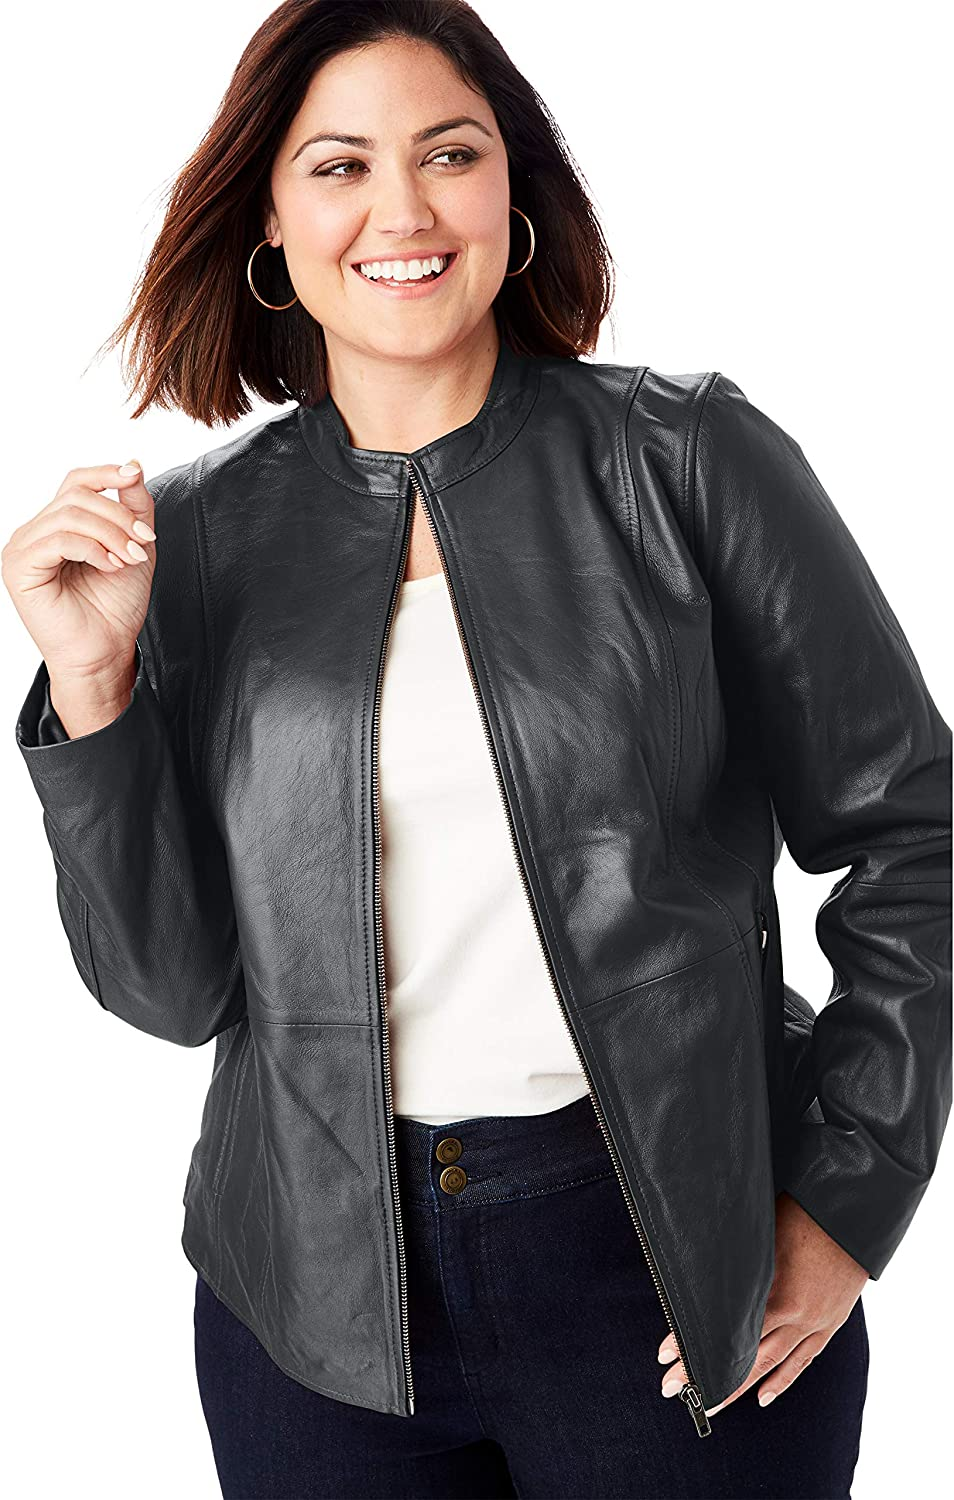 16 W Black Jessica London Womens Plus Size Zip Front Leather Jacket